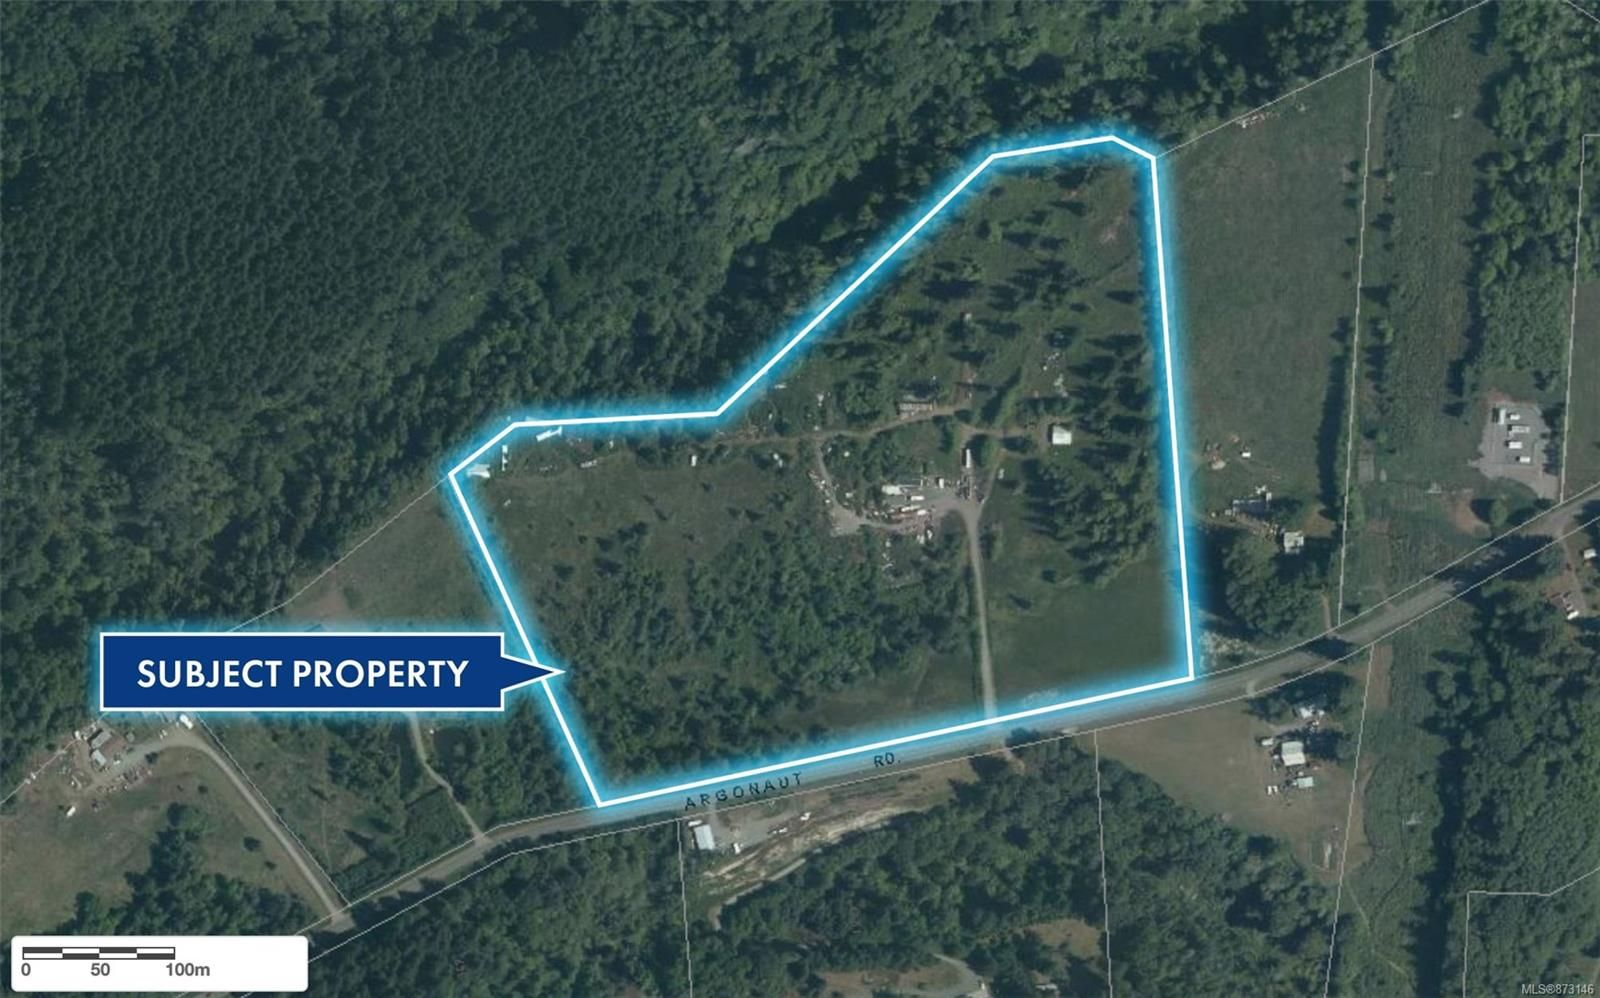 Main Photo: 4700 Argonaut Rd in : CR Campbellton Land for sale (Campbell River)  : MLS®# 873146